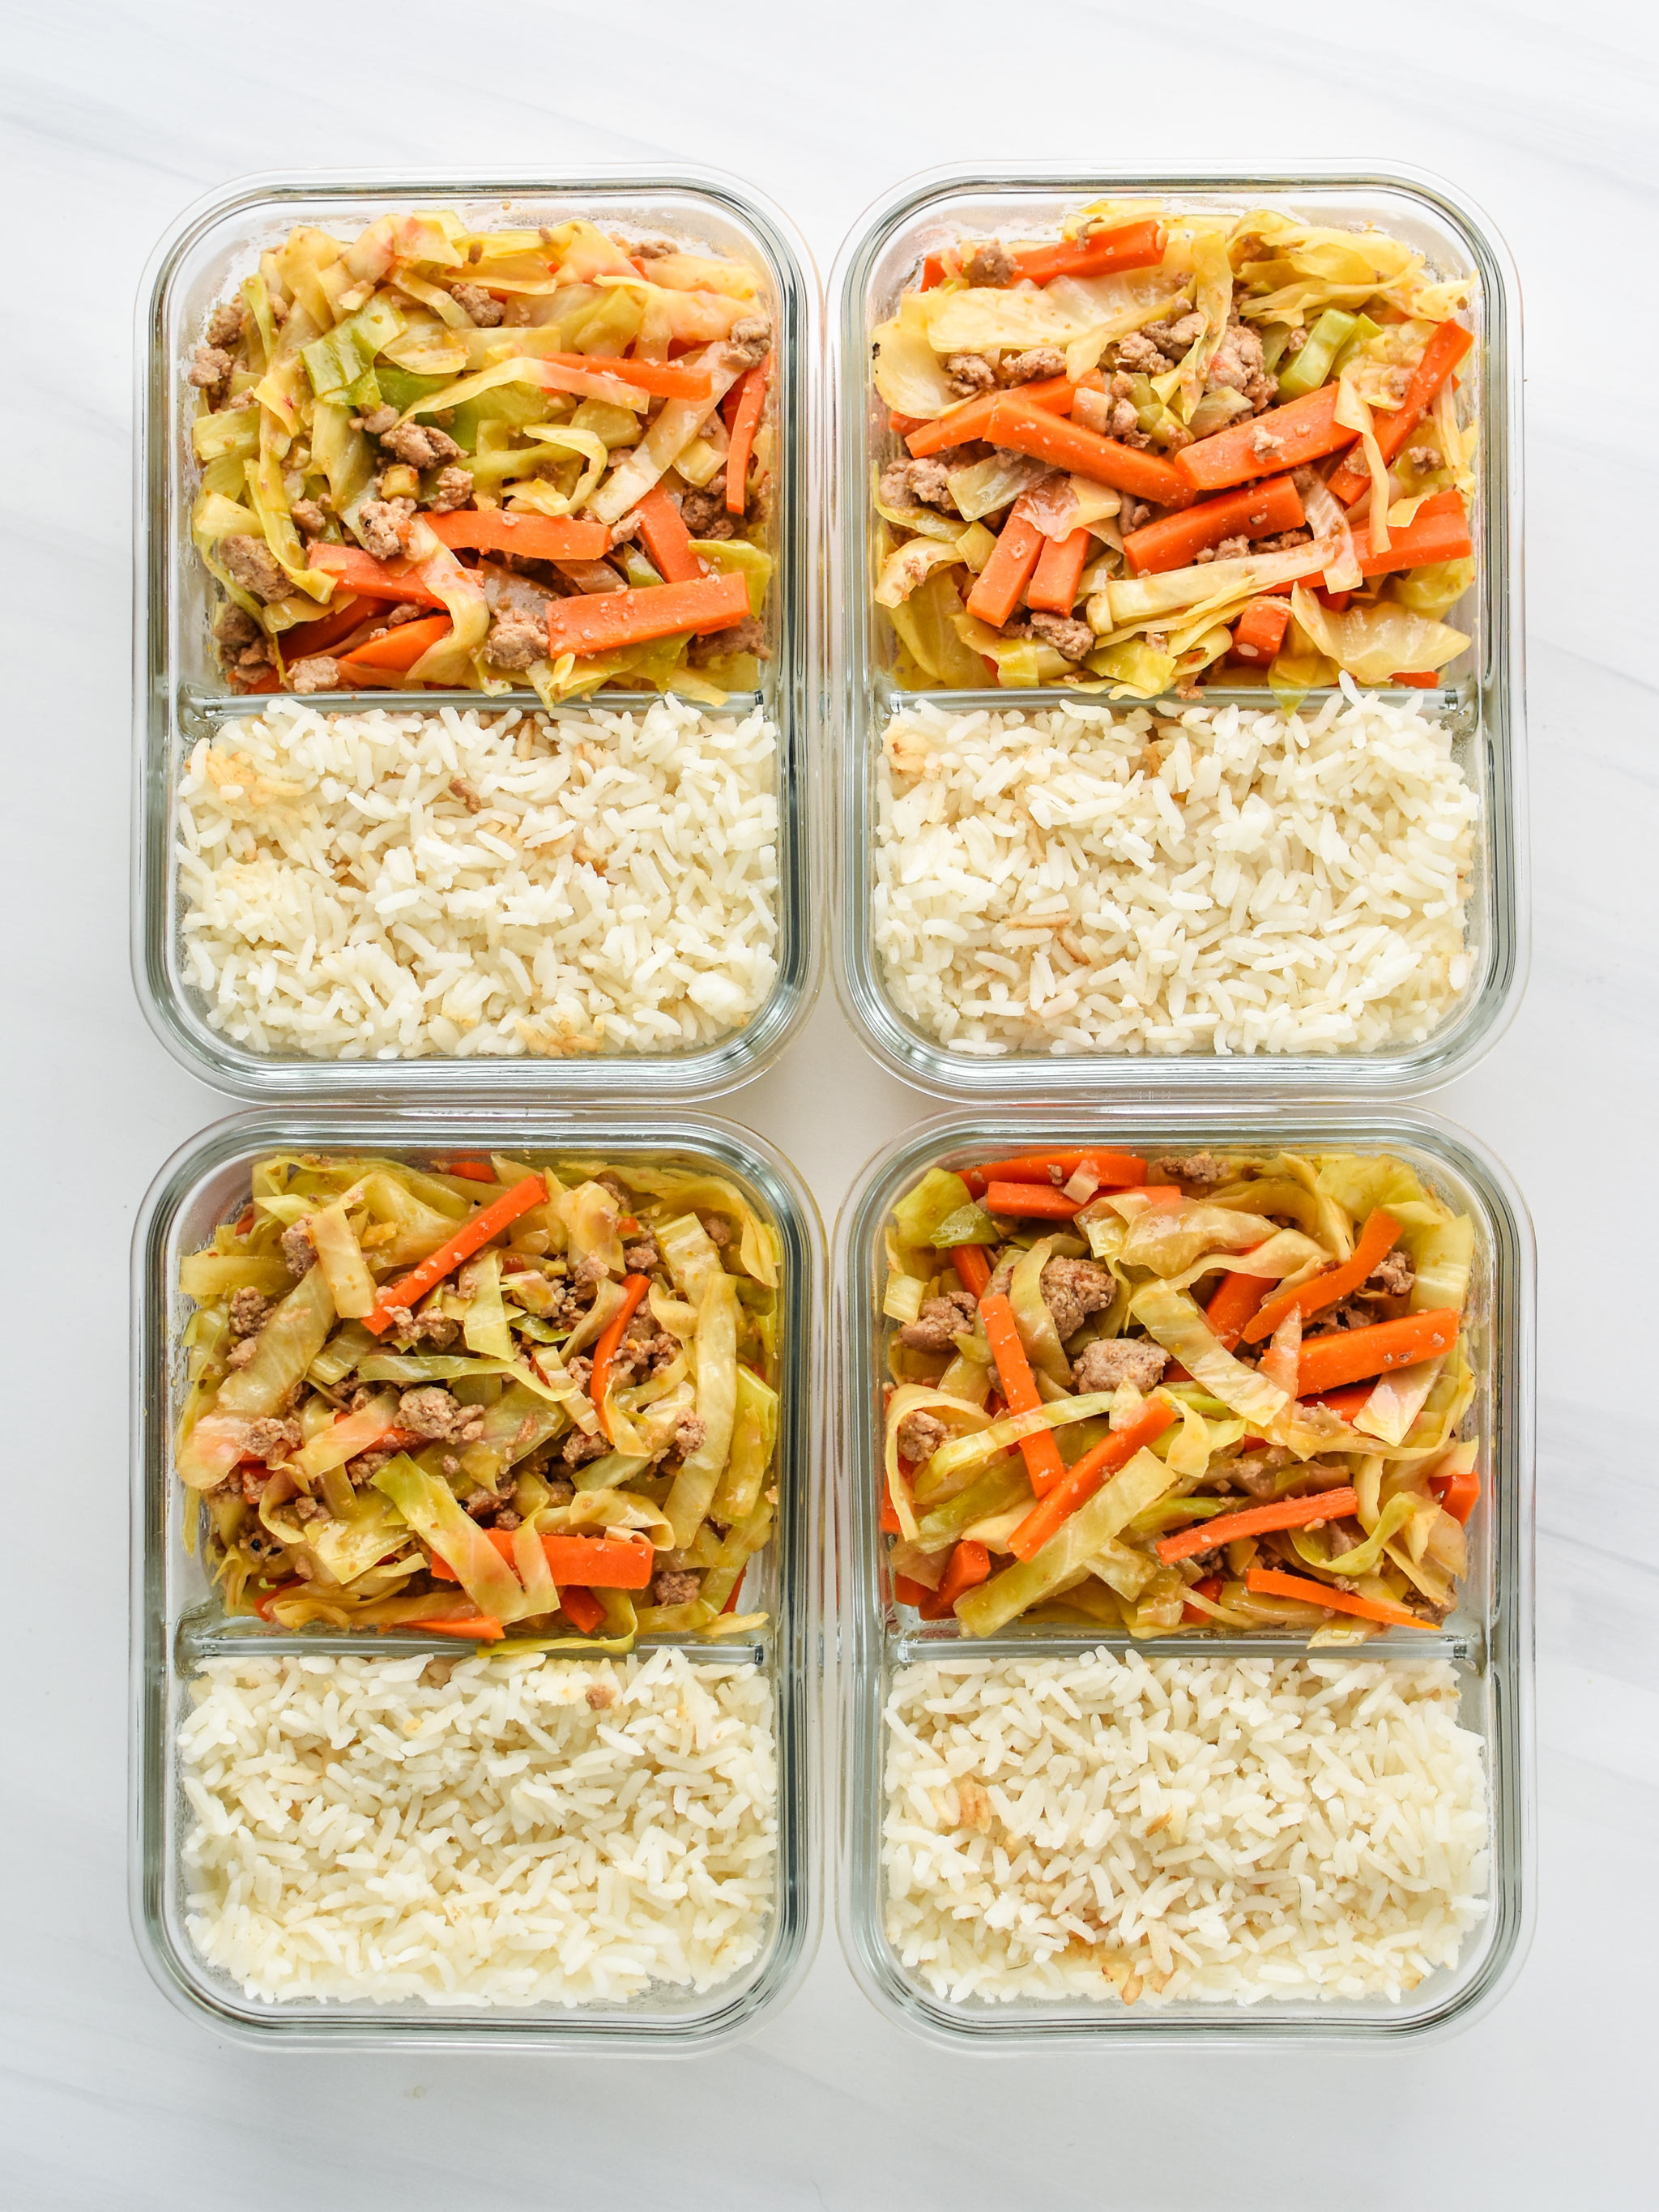 Meal Prep lunch Recipes - this is a spicy ground turkey and veggie meal prep with rice.